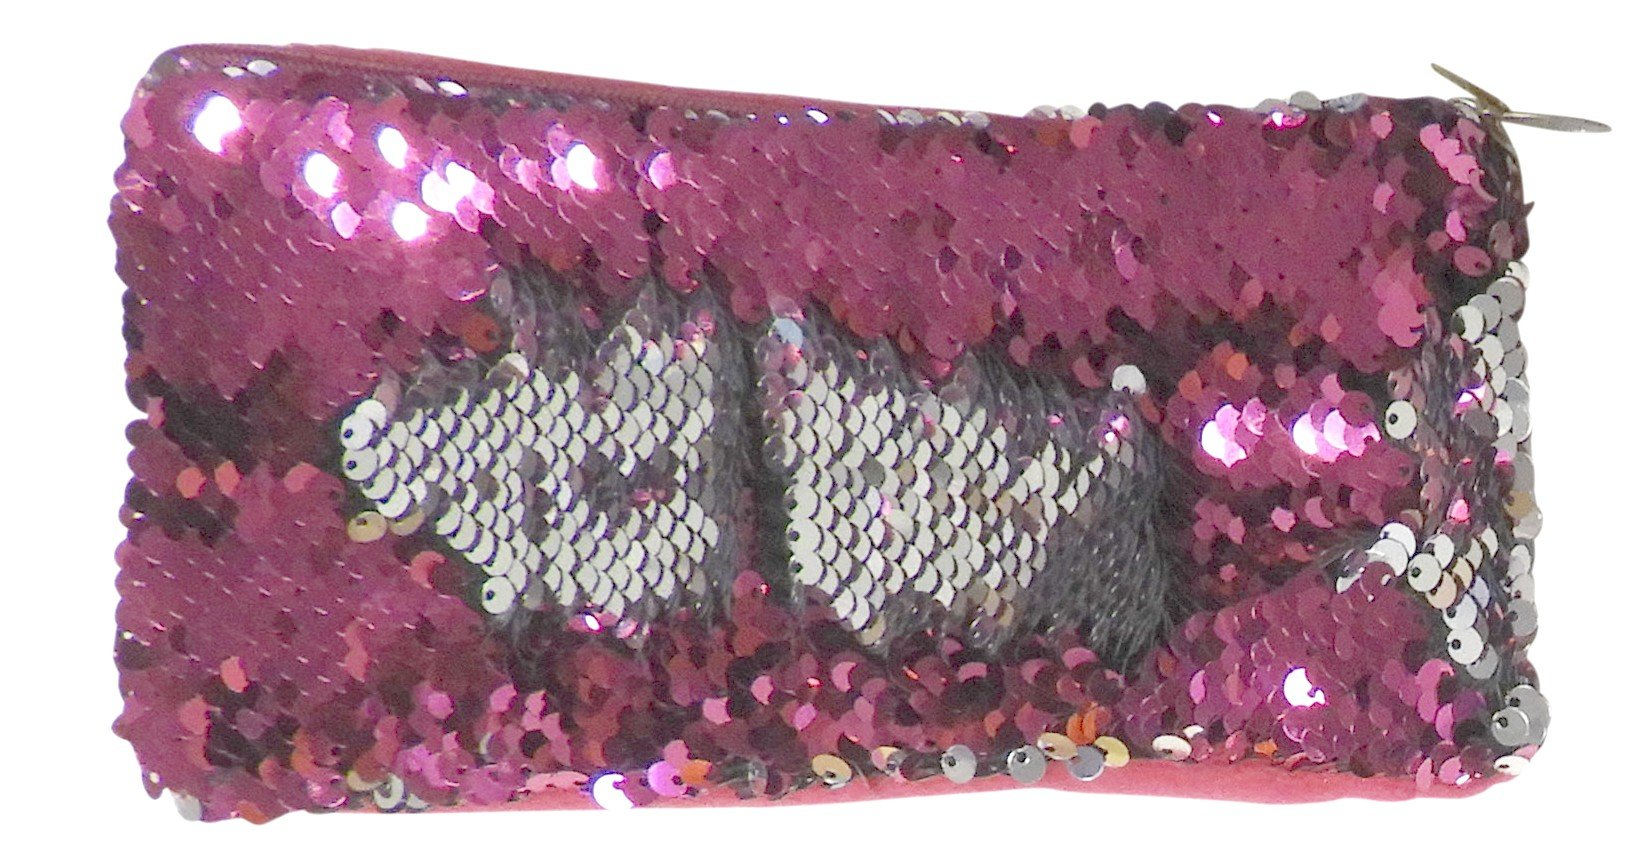 DINY Home & Style Mermaid Sequin Evening Bag Clutch Purse Cell Phone Holder With Zipper (Hot Pink with Silver)